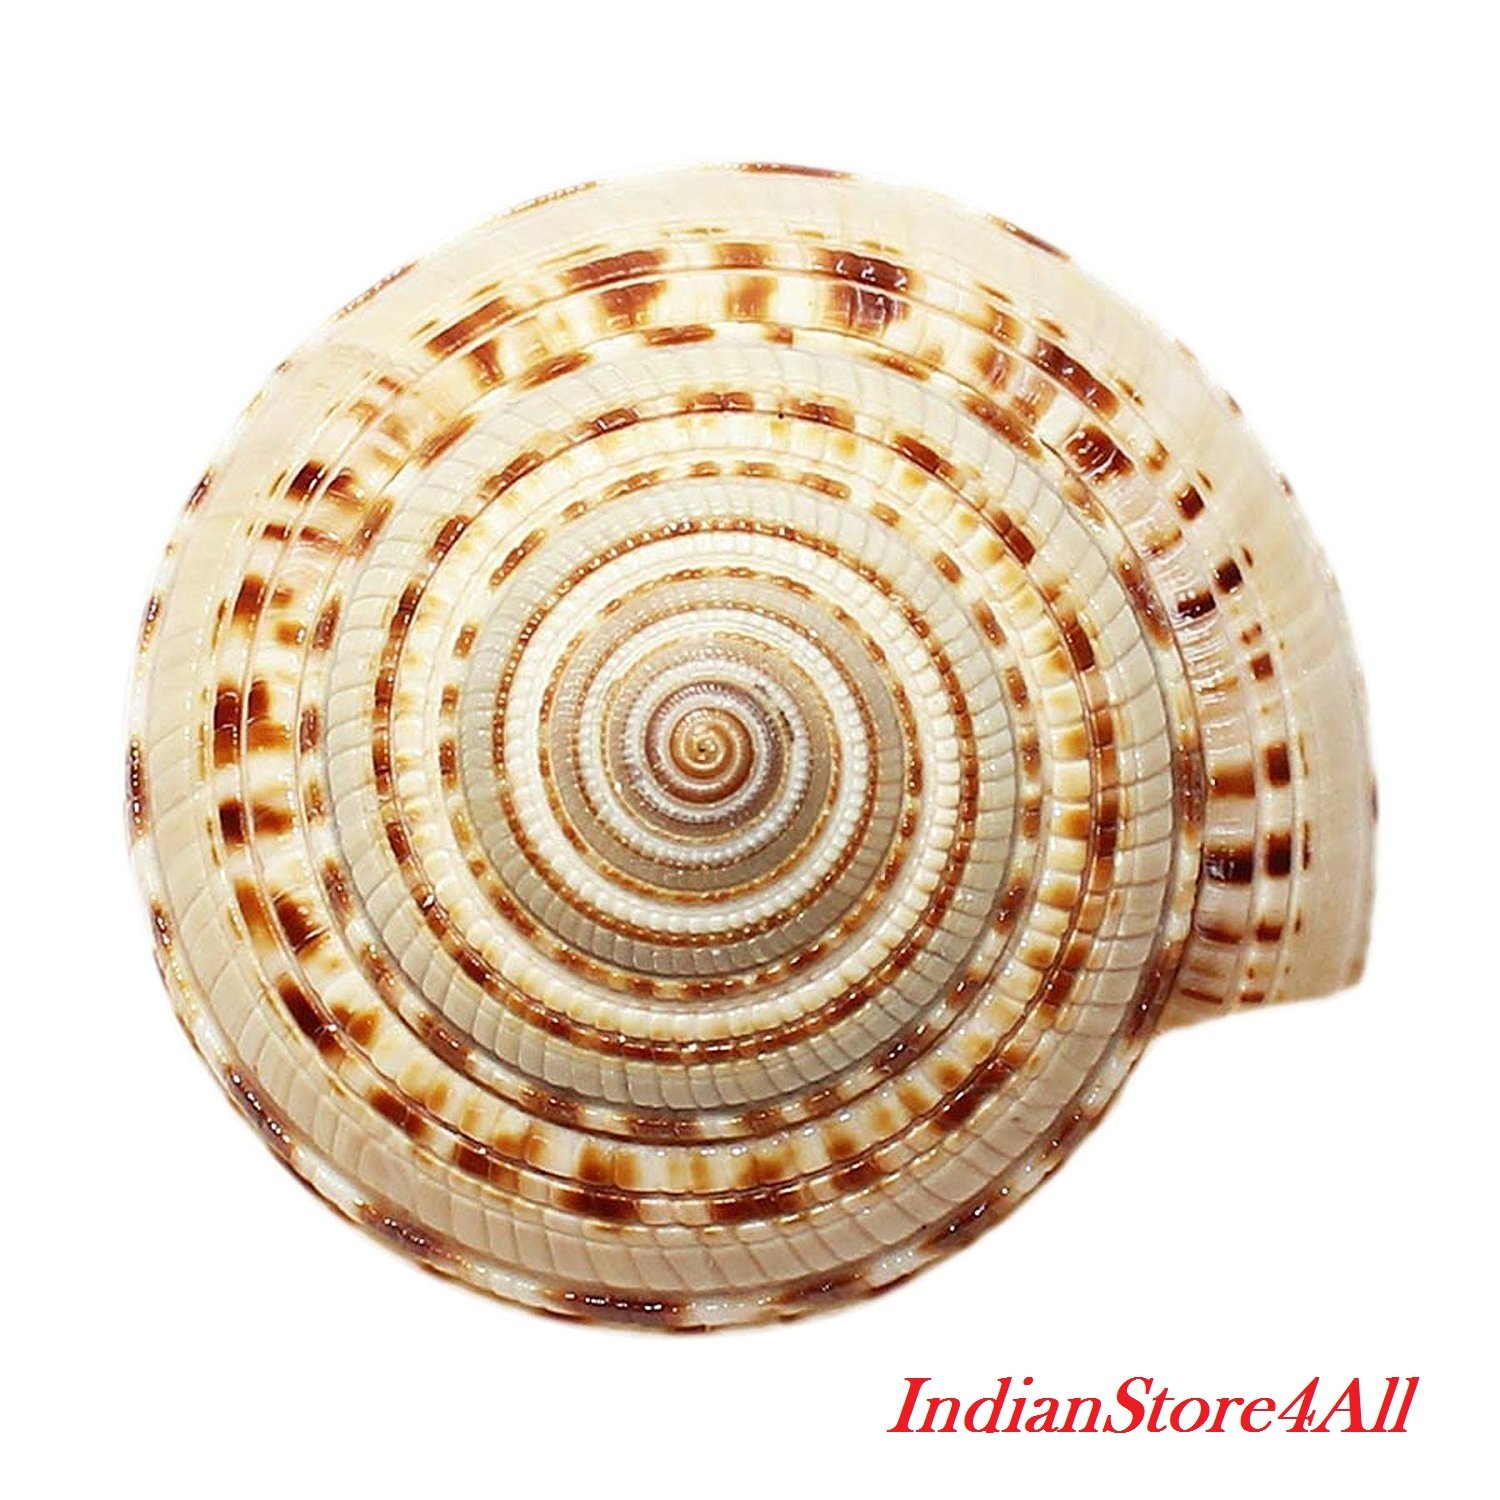 IndianStore4All Vishnu Sudarshan Chakra Shankh 0.75 To 1 Inches Approx